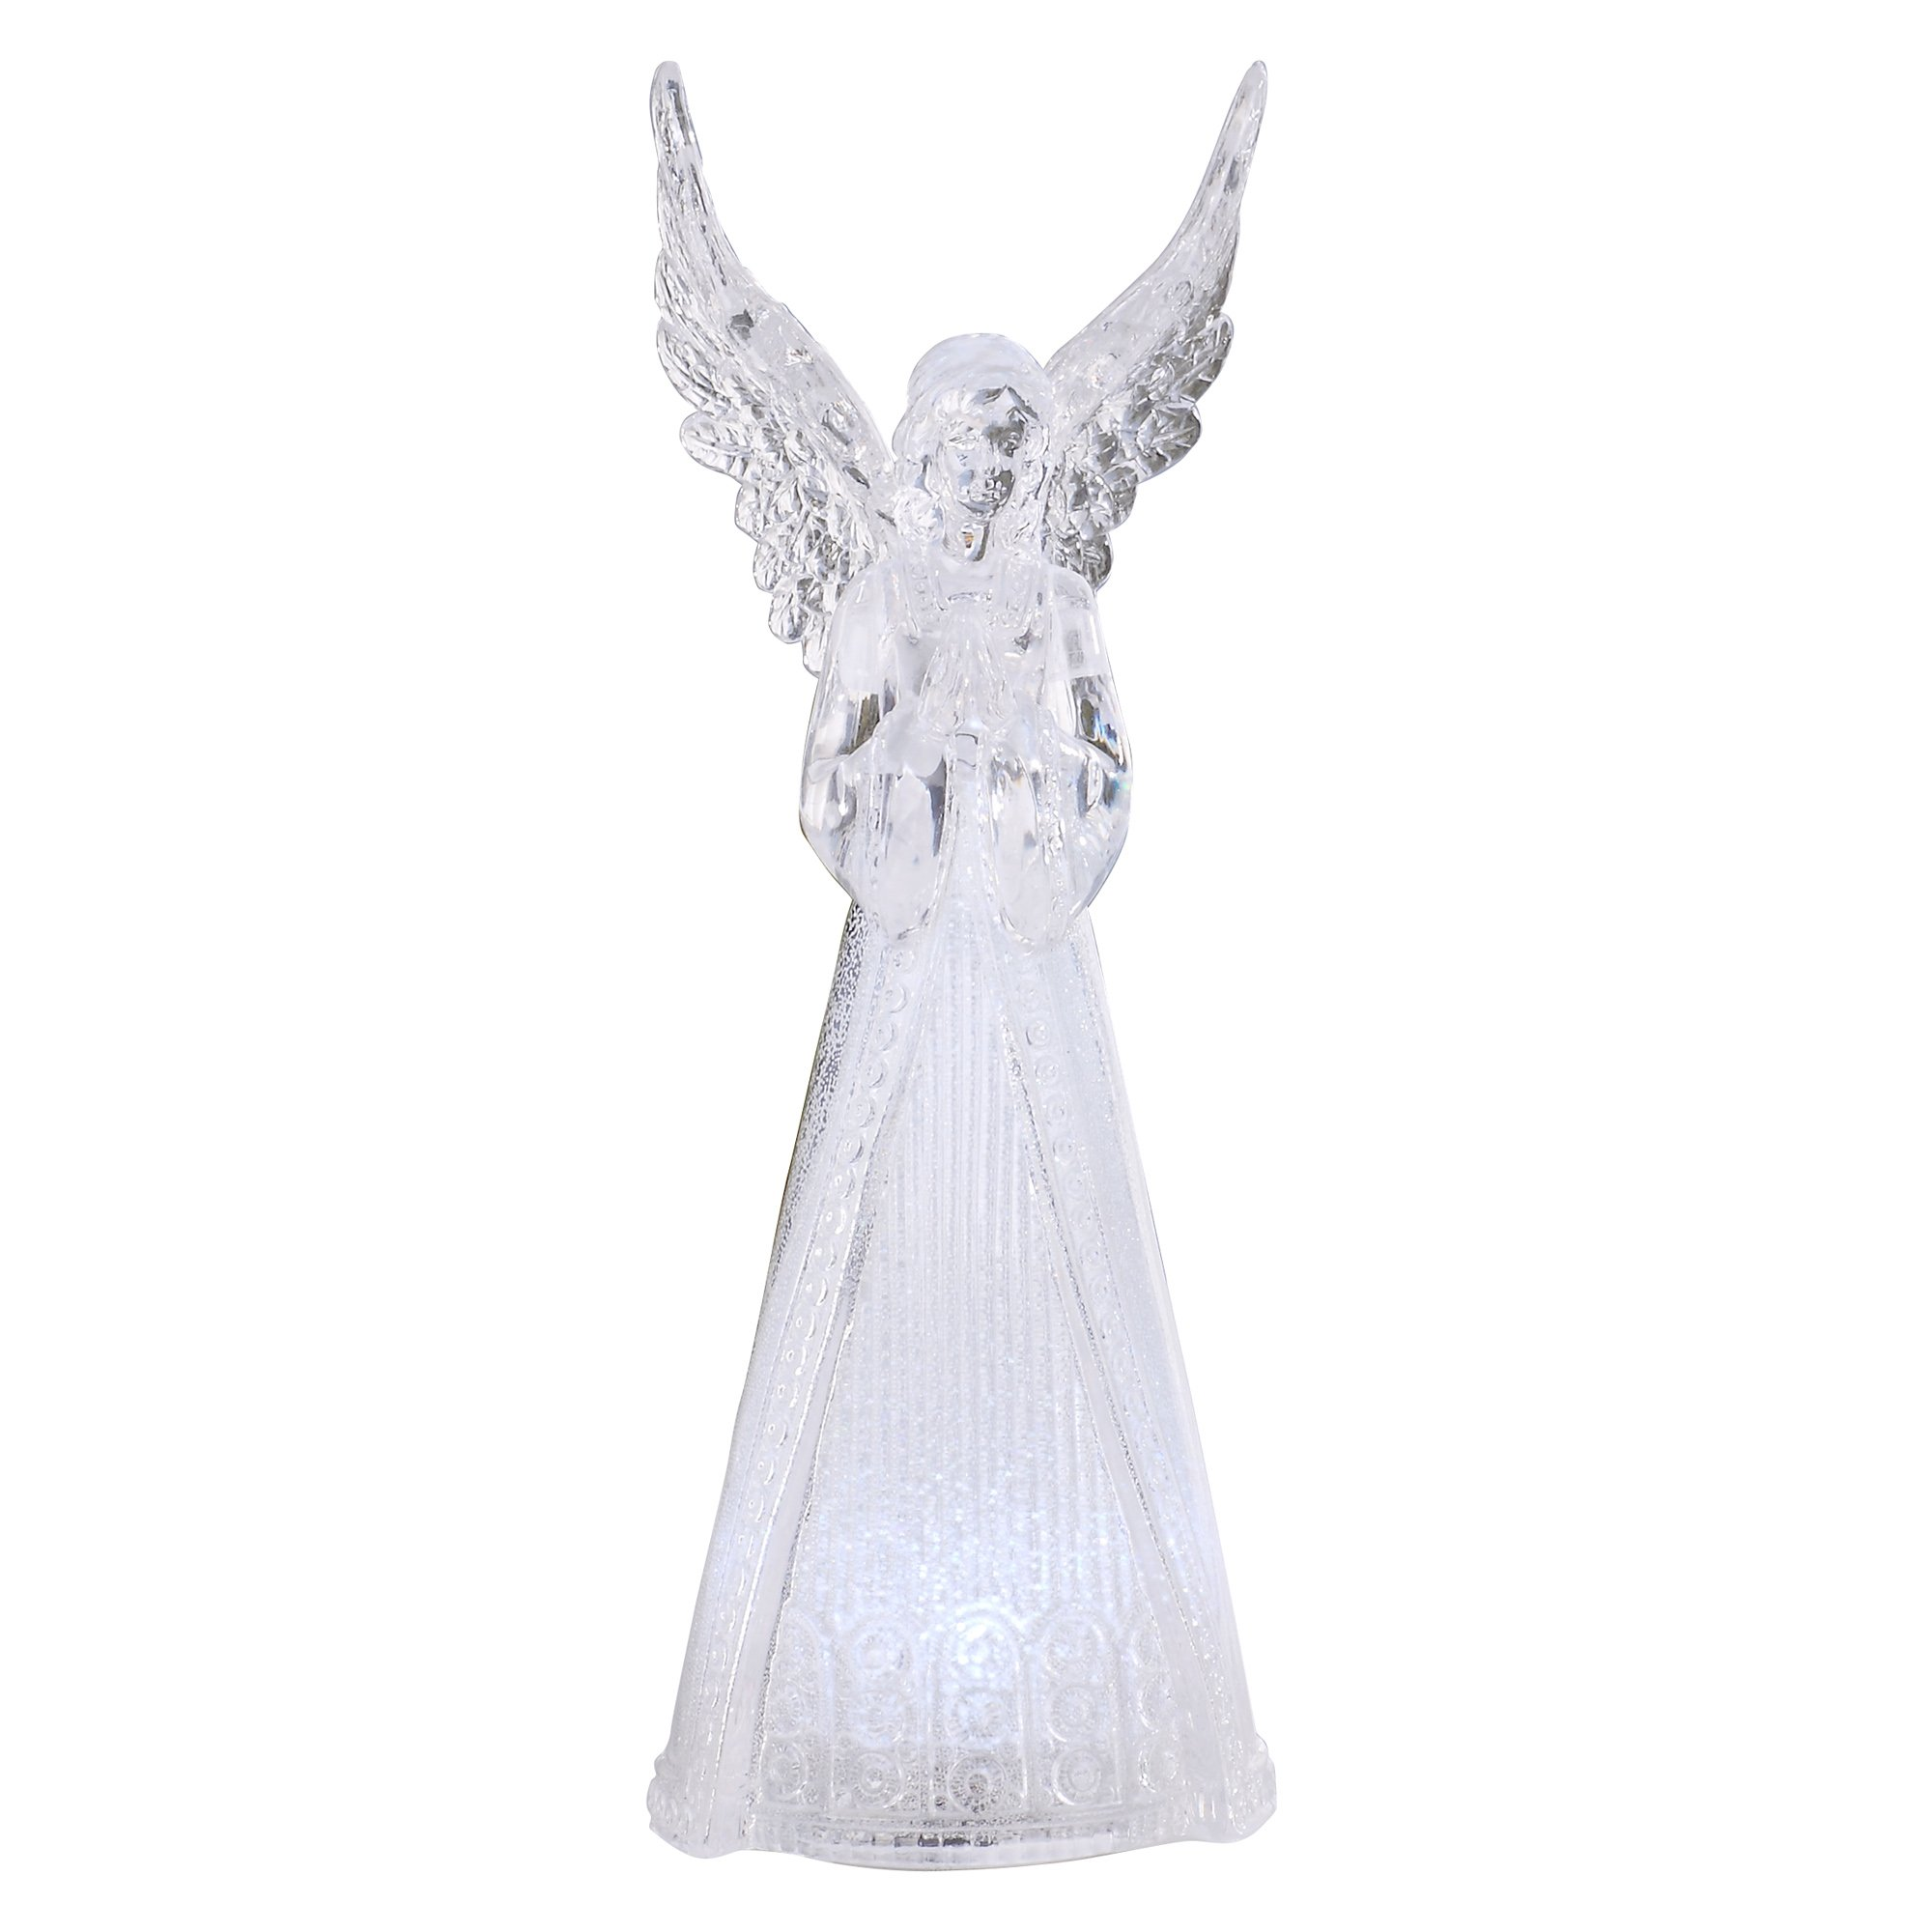 Napco Clear Angel Figure with LED